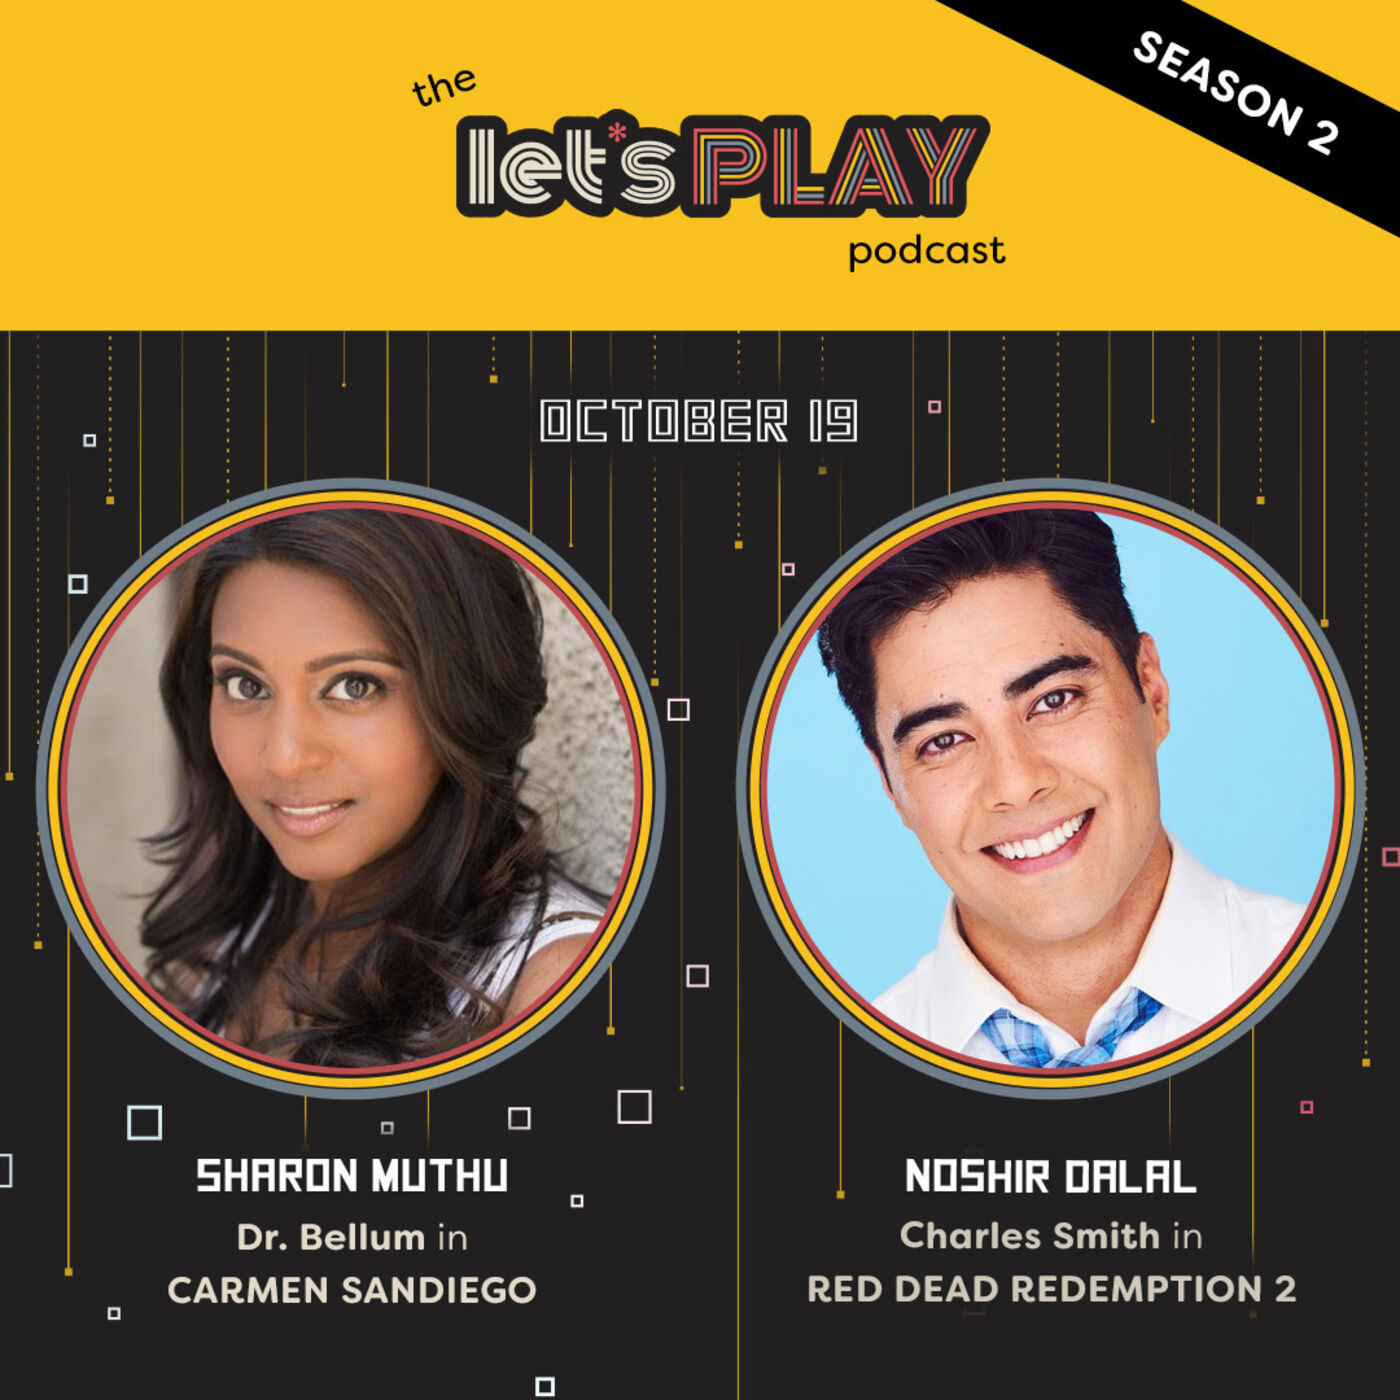 S2 #1: Sharon Muthu & Noshir Dalal (Dr. Bellum in Carmen Sandiego & Charles Smith in RDR2)